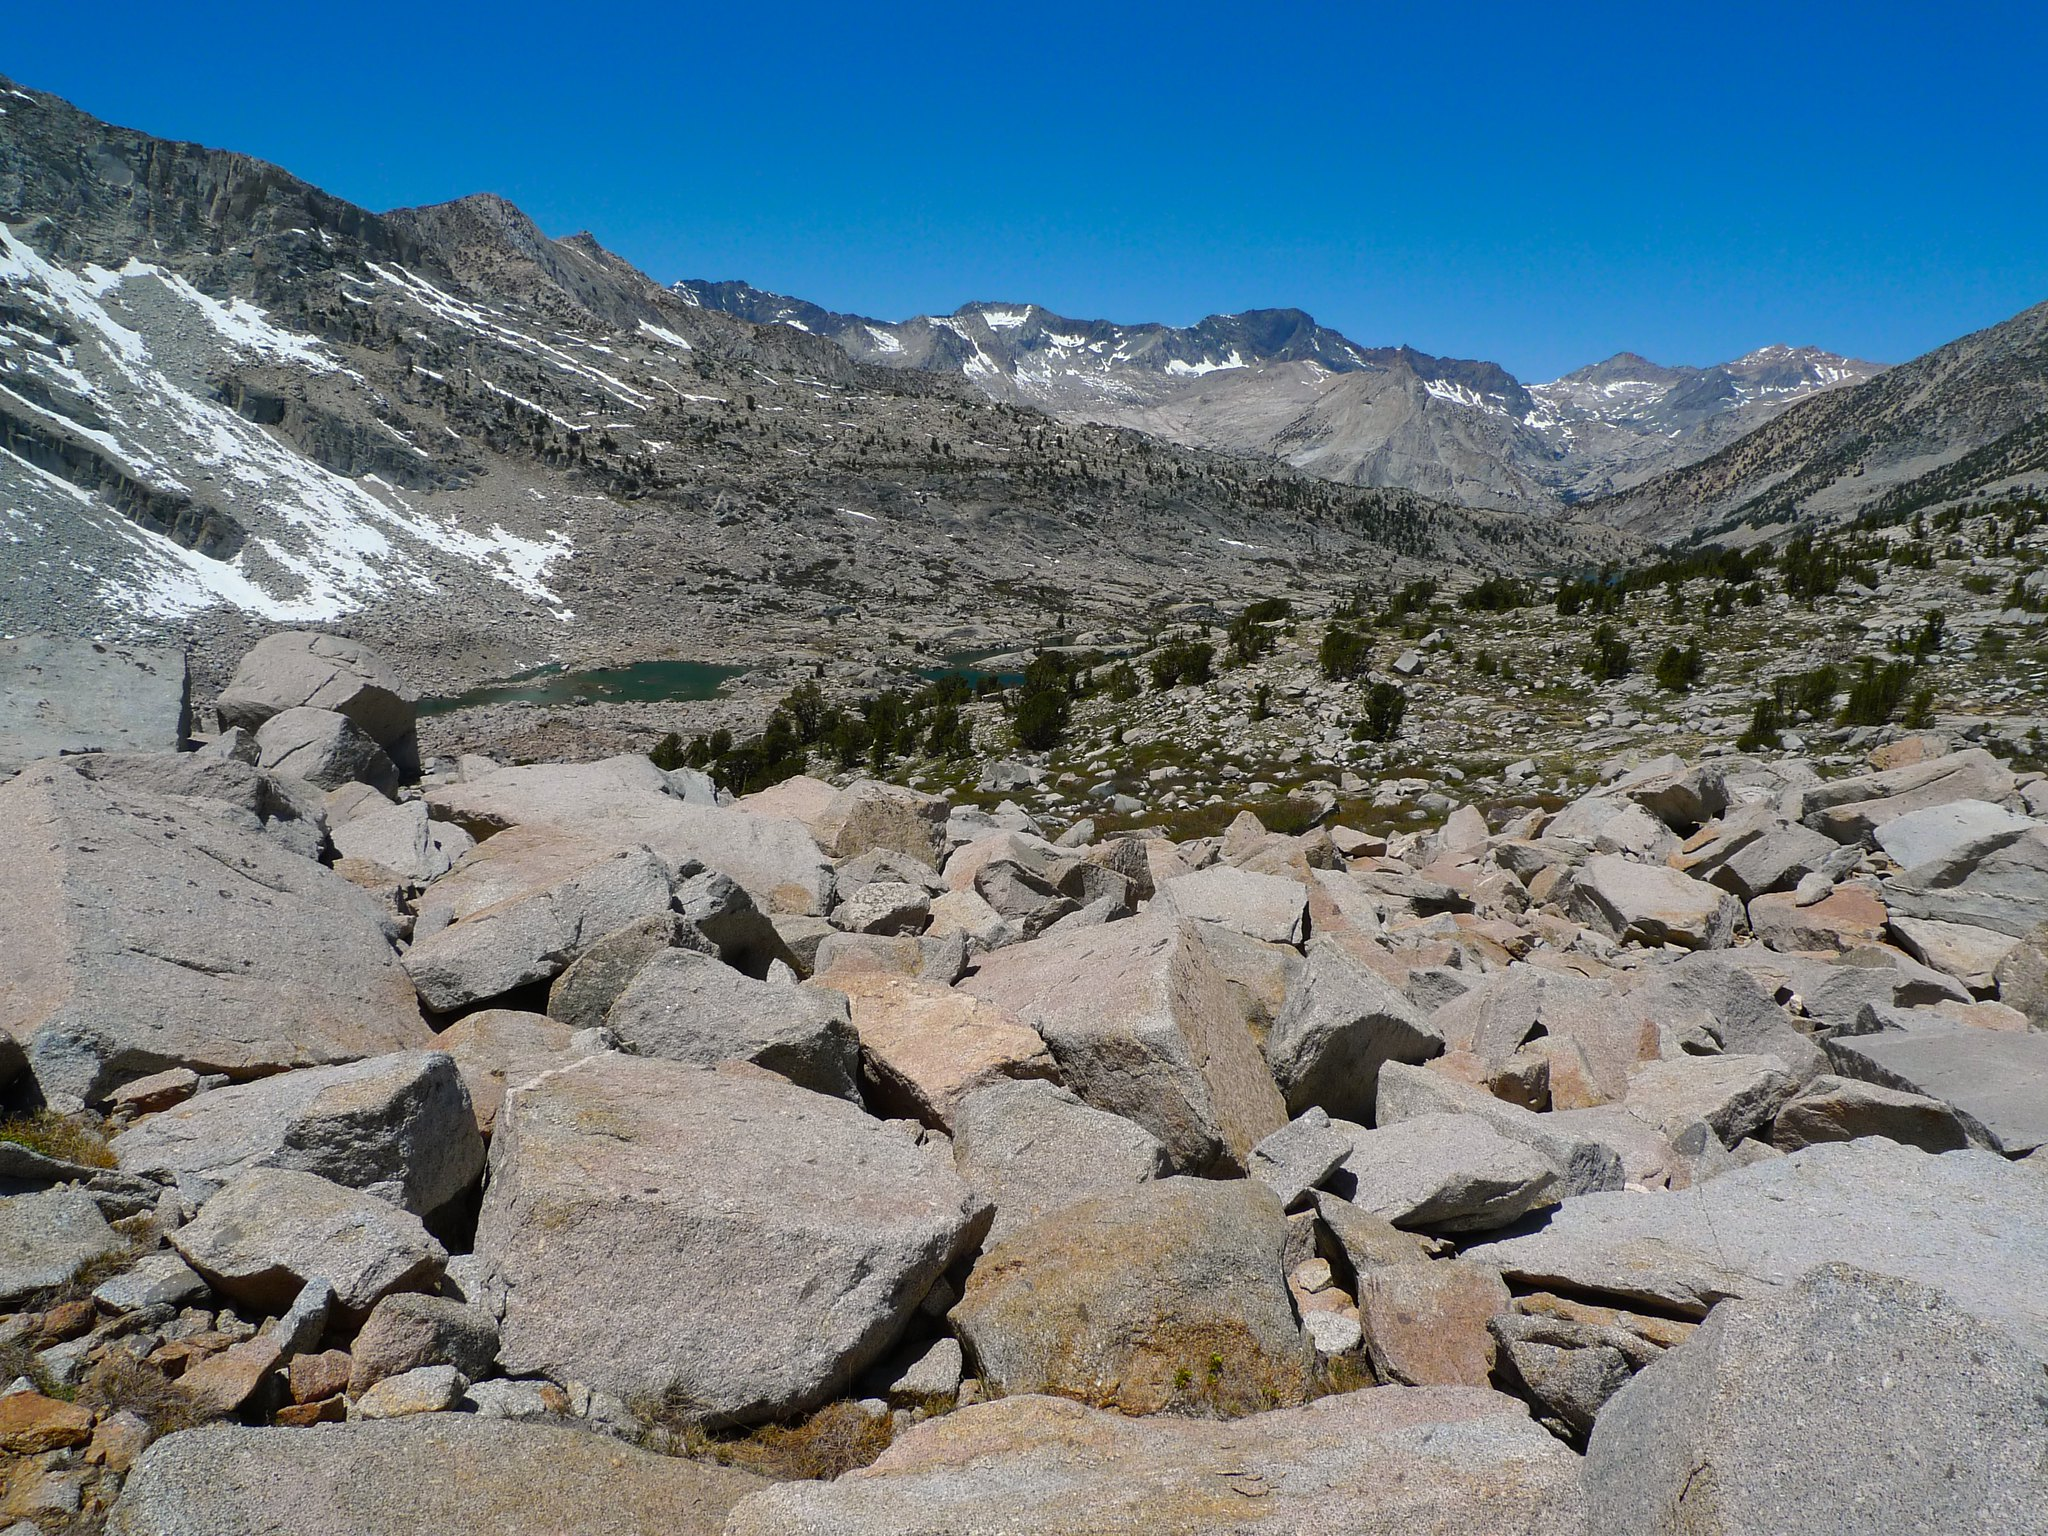 I'm stupid and stayed super high up, so I had to cross a ridiculous amount of large talus on my way up to Knapsack Pass